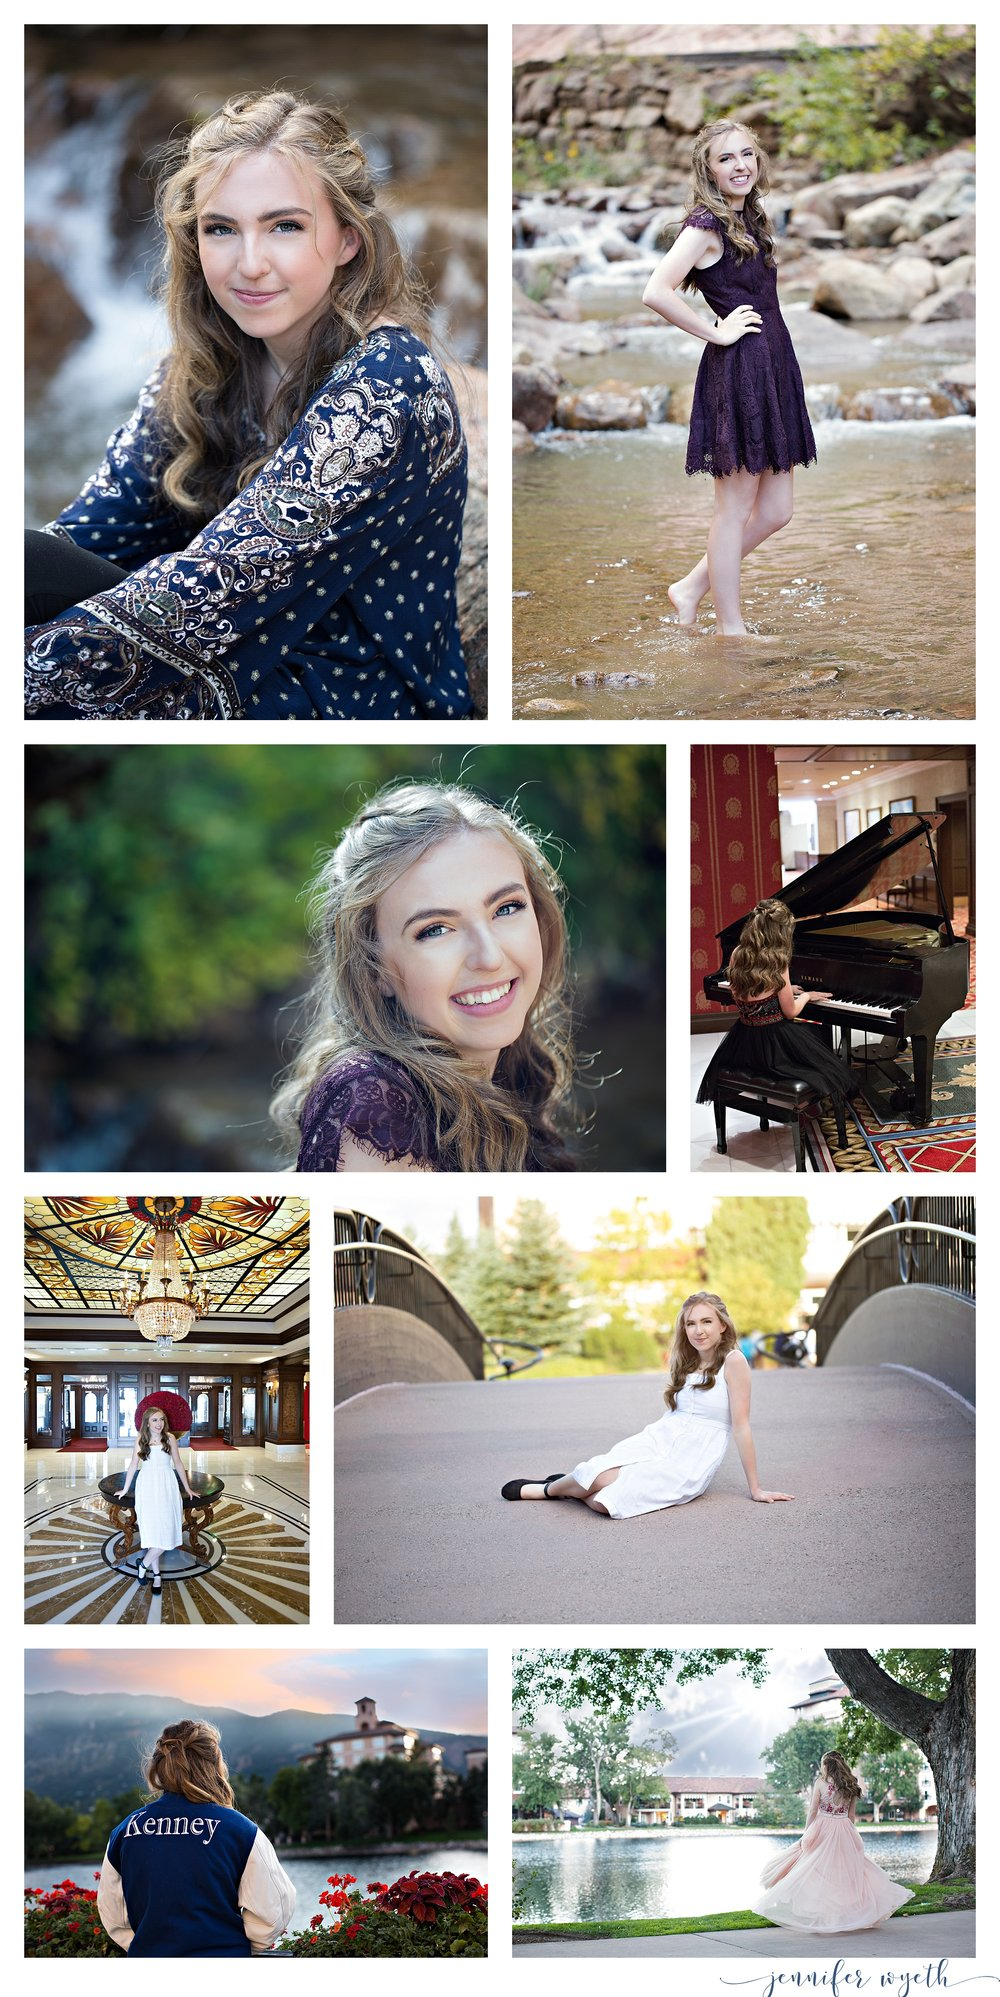 Jennifer-Wyeth-photography-senior-pictures-colorado-springs-photographer_0242.jpg